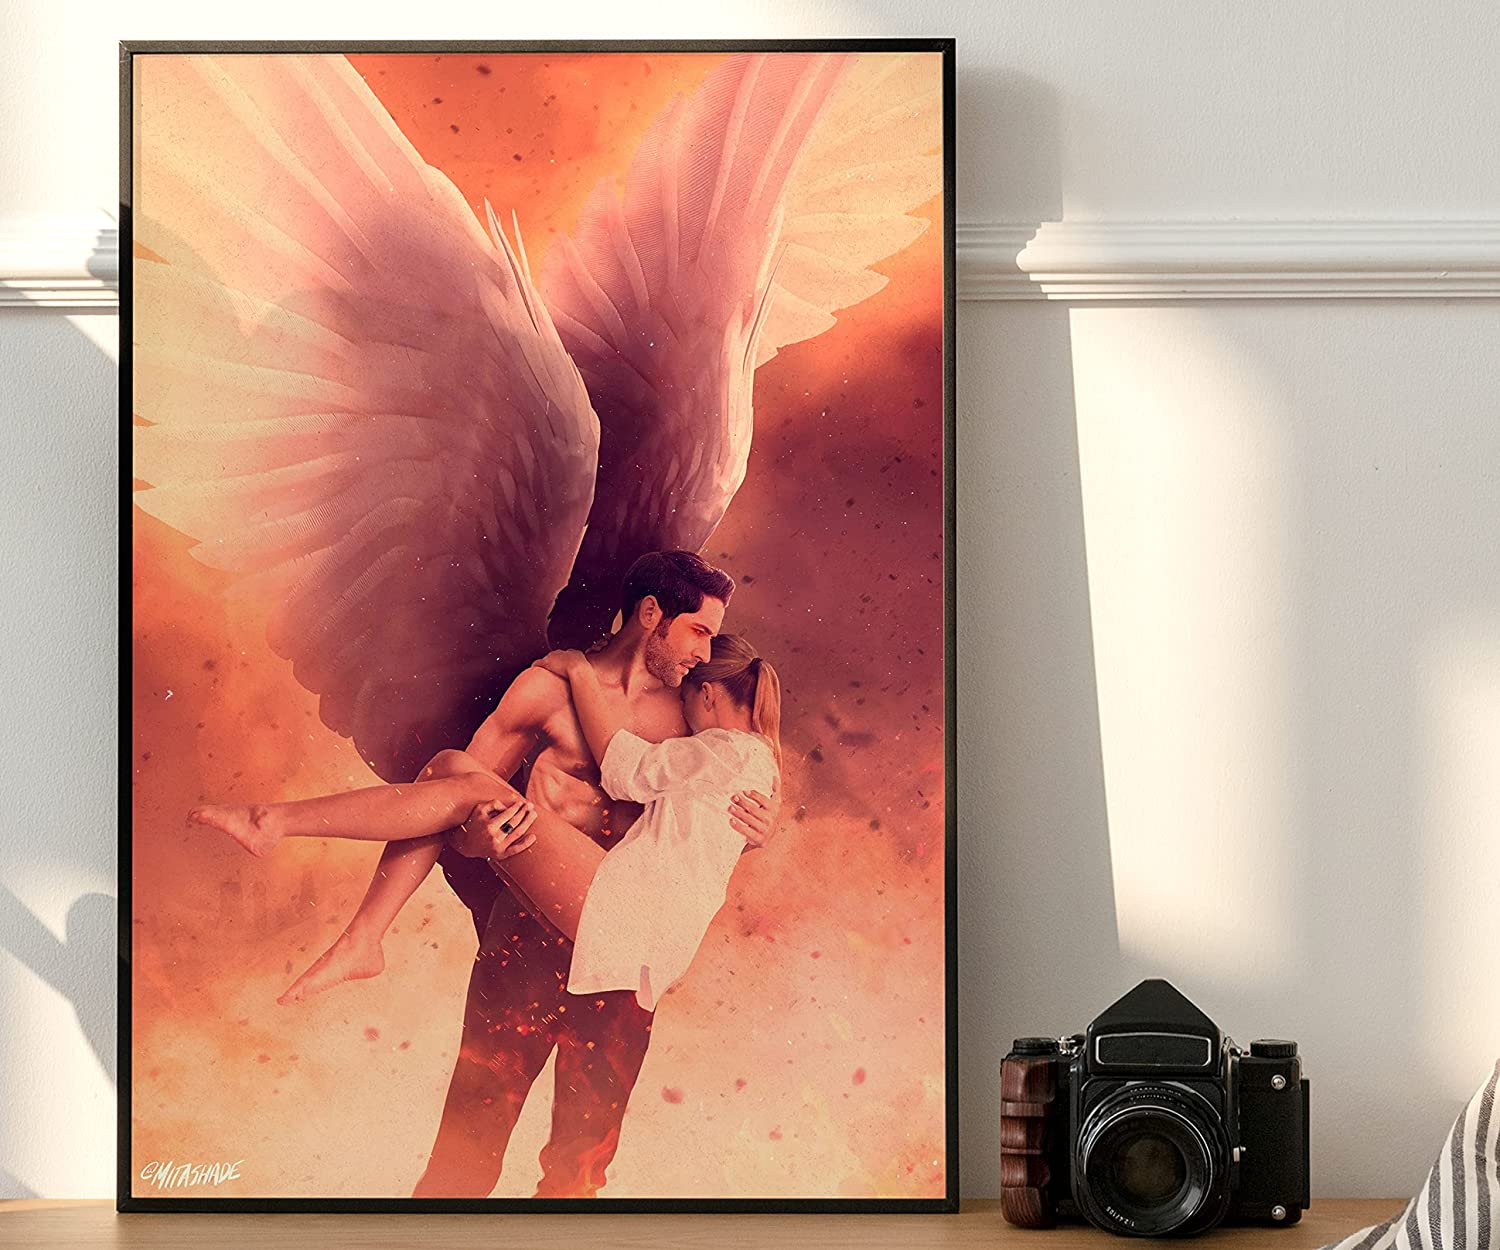 CanvasWallCraft Max 88% OFF poster Easy-to-use compatible with Lucifer